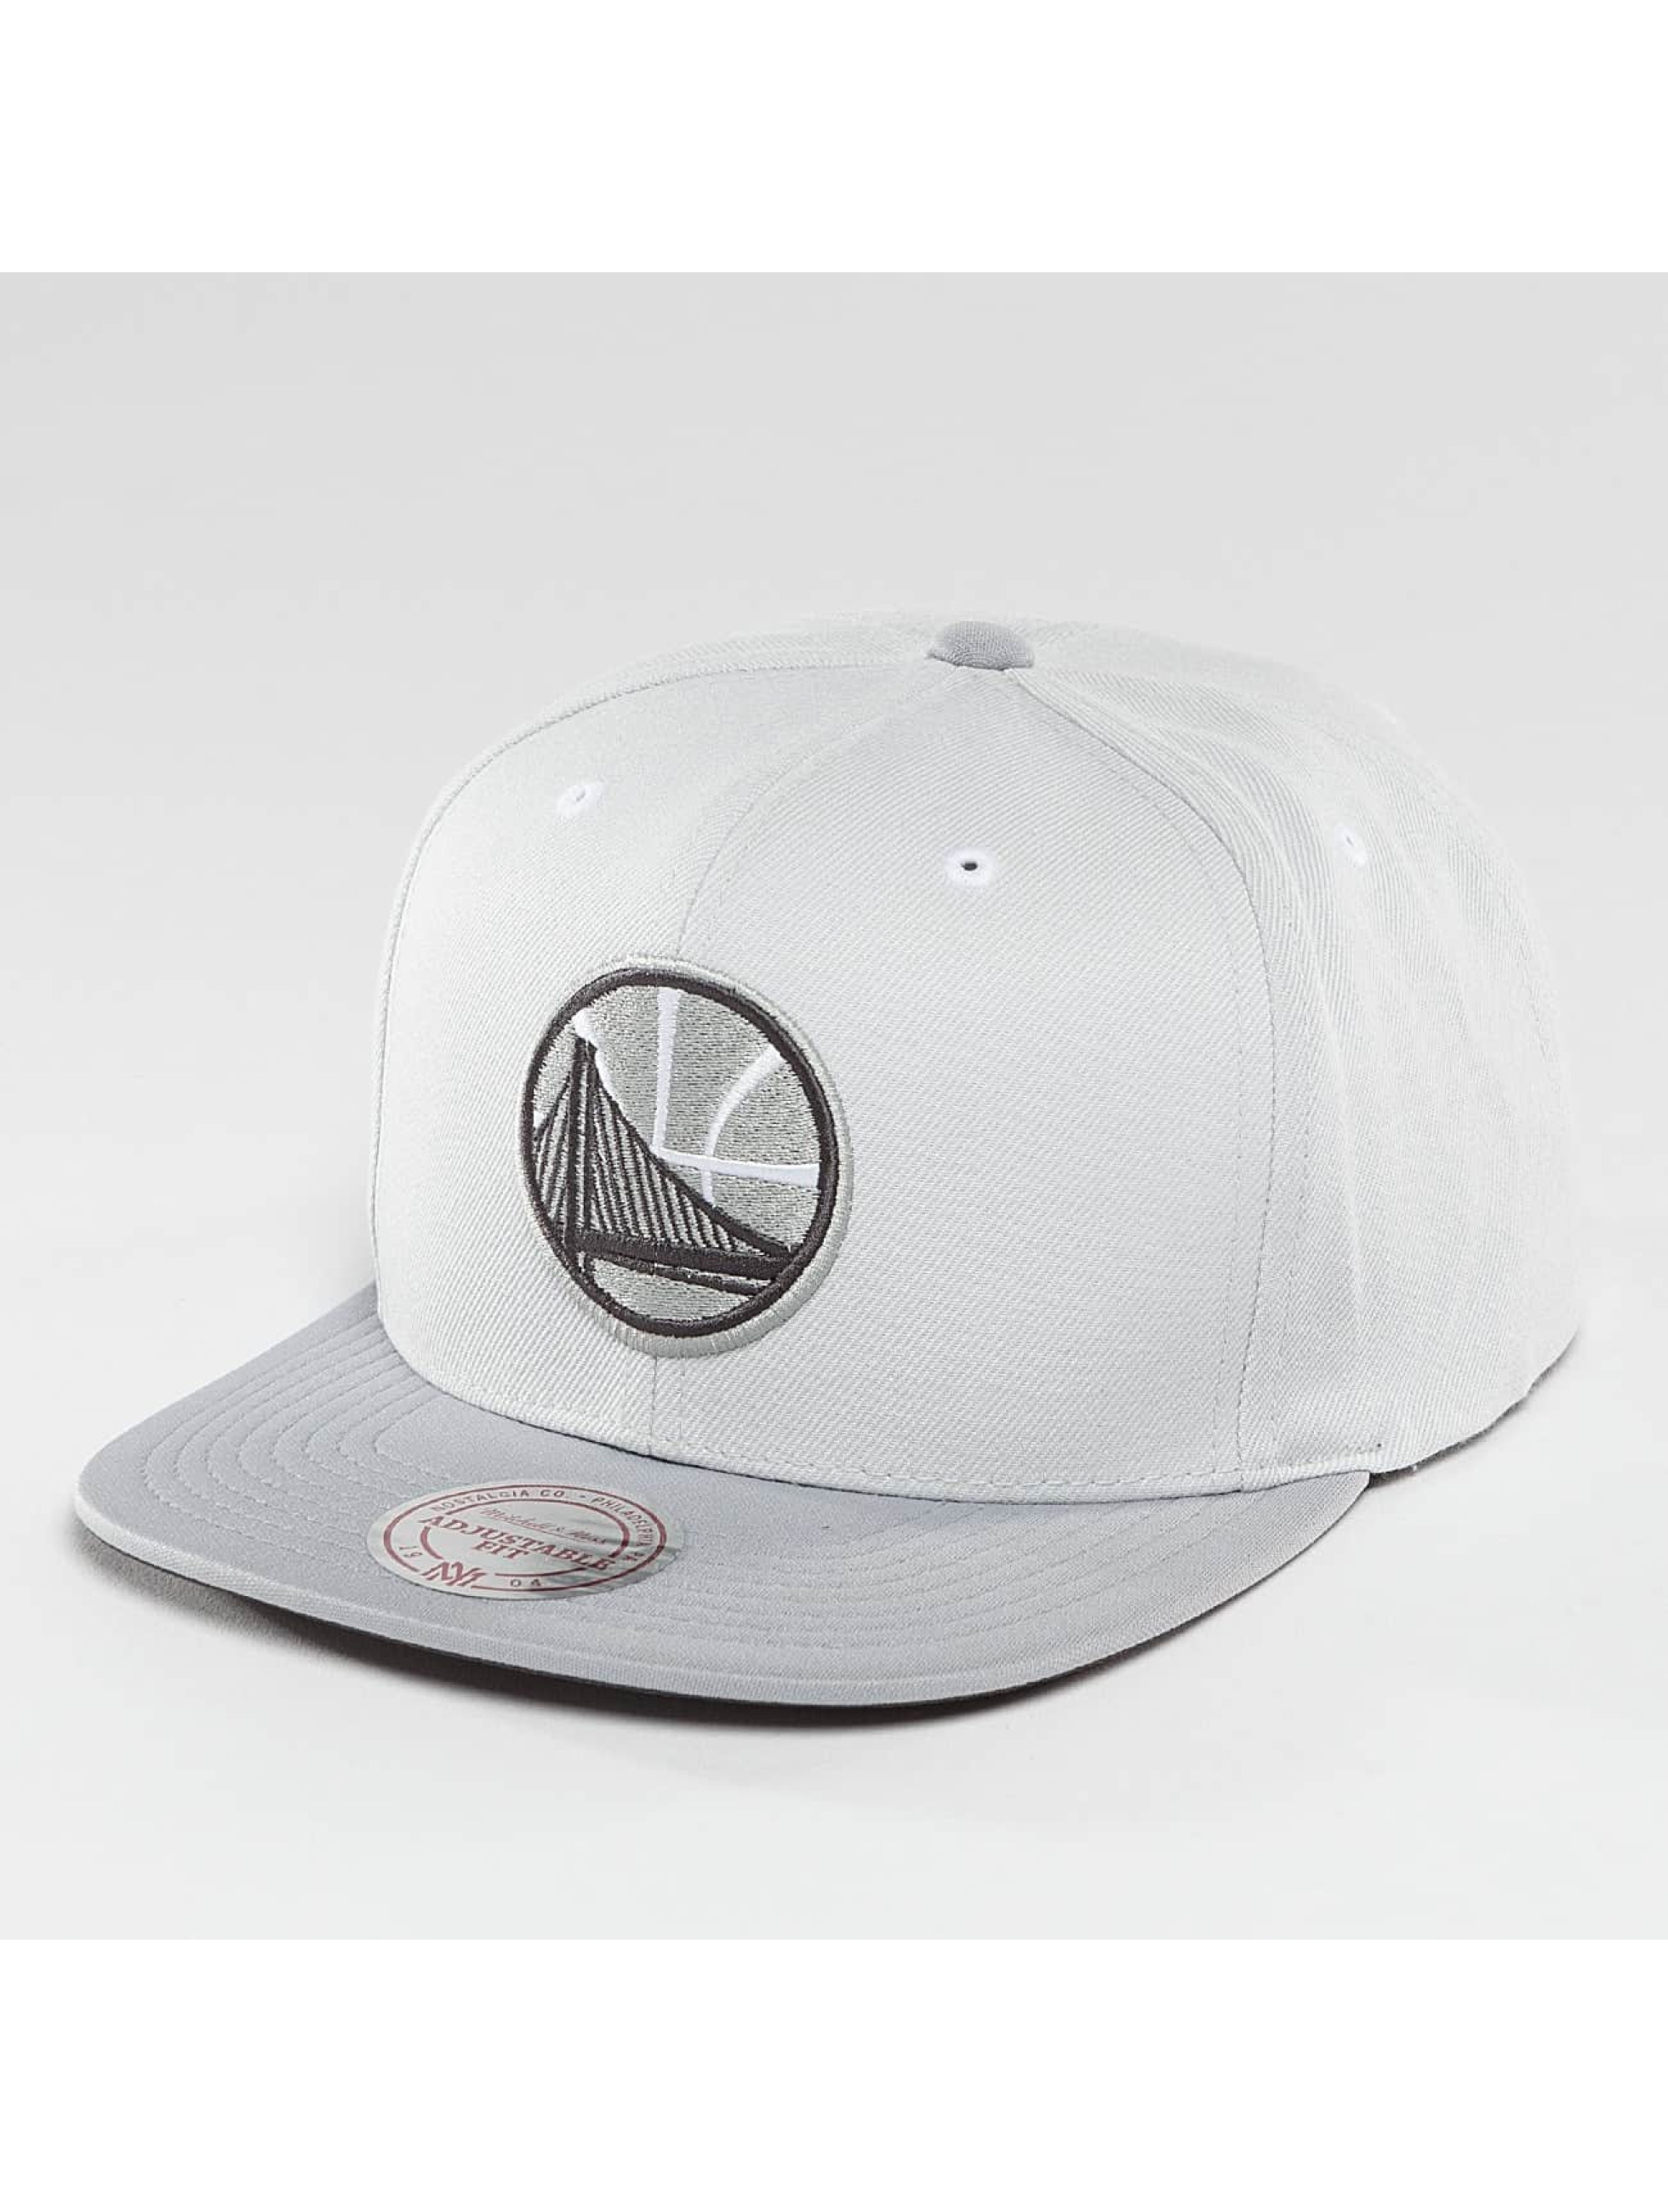 Mitchell & Ness Snapback Grey 2 Tone Plus Series Golden State Warriors šedá